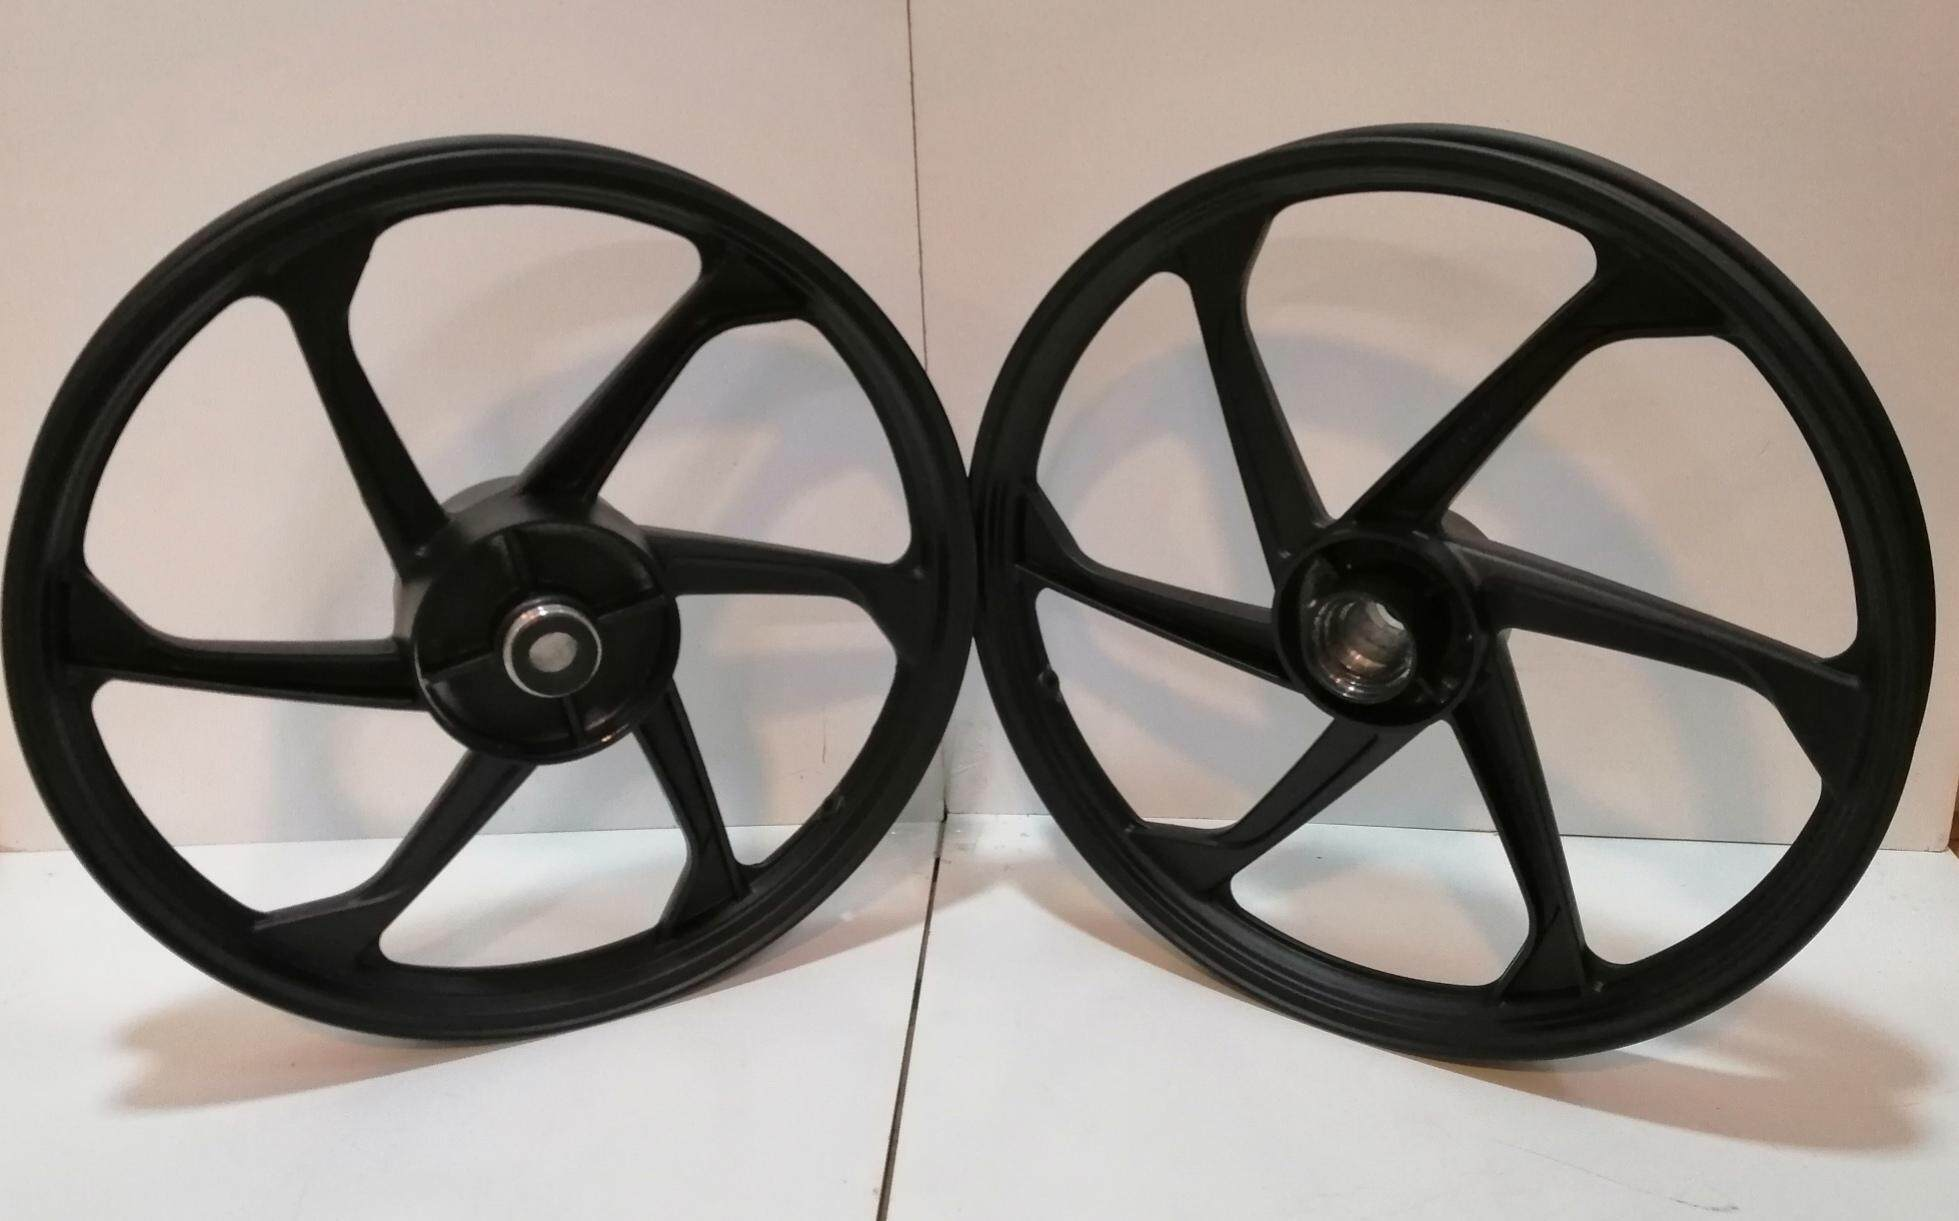 666 Sport Rim • Honda Wave125 (black) By K.k Motorspareparts.